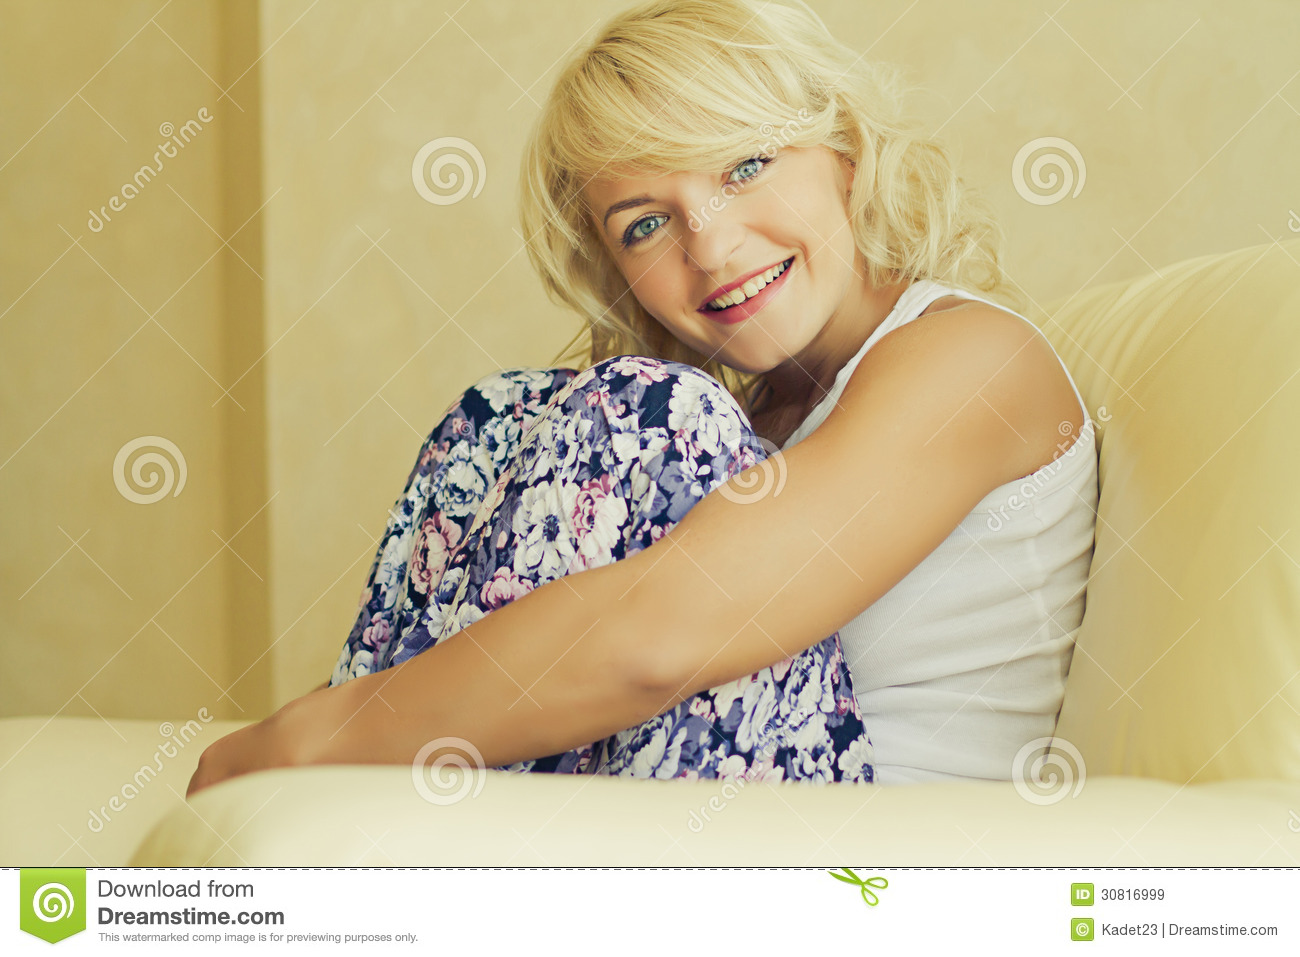 Free Sexmovie Blond Sofa Young Smiling Blond Woman Royalty Free Stock Images